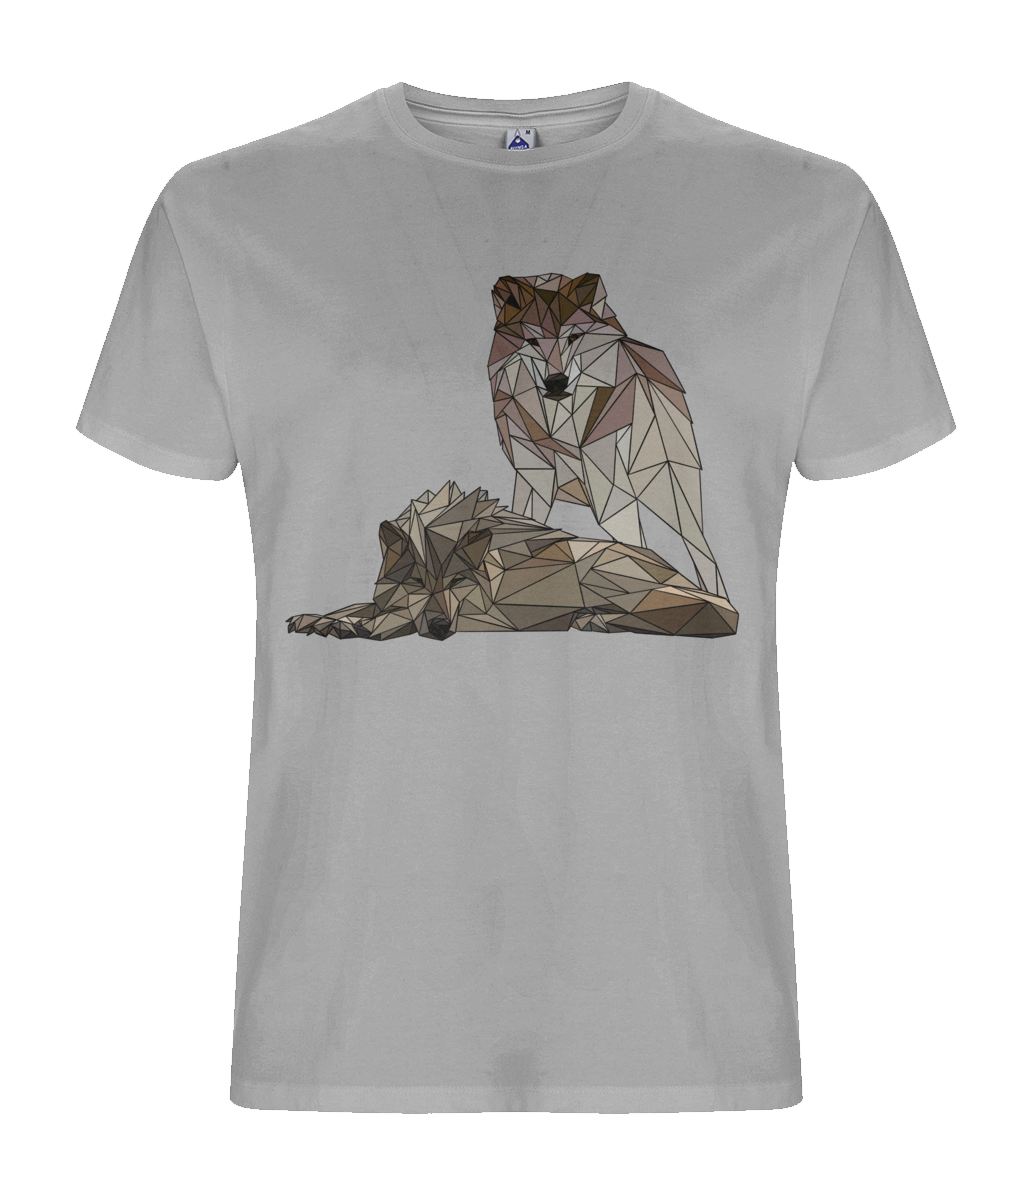 Protection Men's Grey Tee